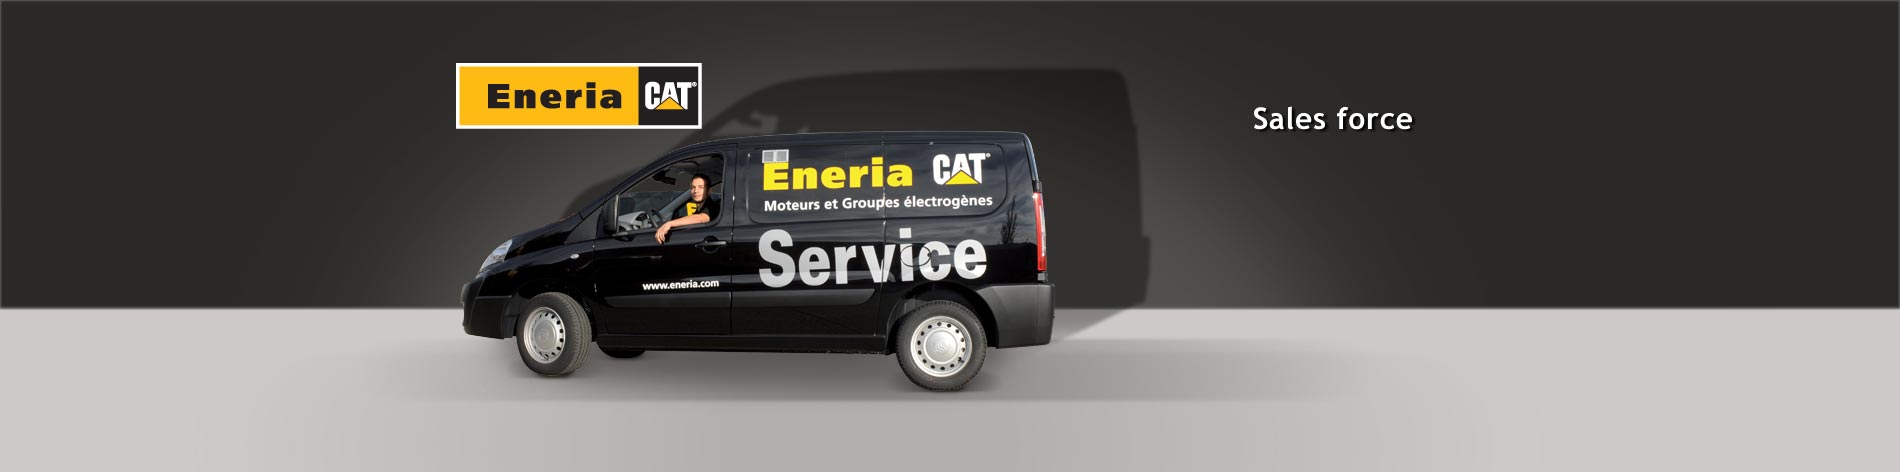 Service & Maintenance positions guarantee a high level of services to our customers.